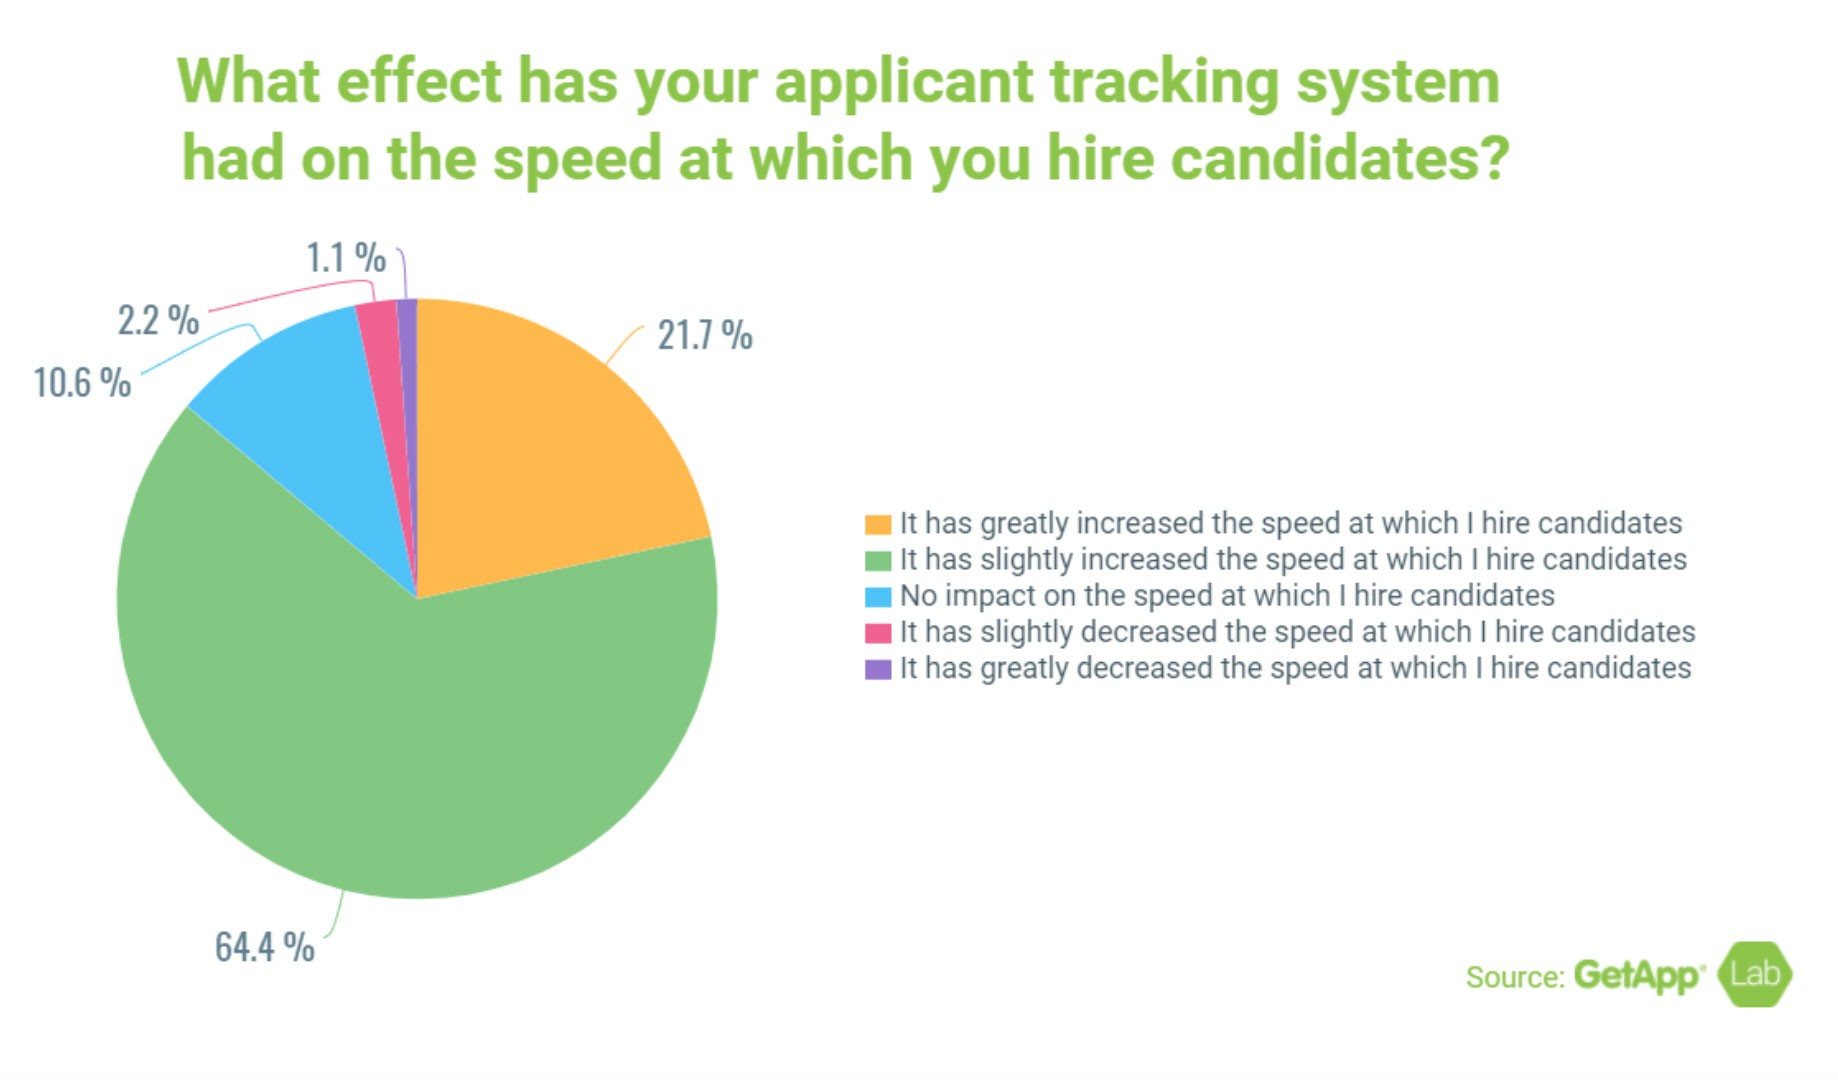 Screenshot of pie graph with headline: What effect has your applicant tracking system had on the speed at which you hire candidates?  21.7% - It has greatly increased the speed at which I hire candidates 64.4% - It has slightly increased the speed at which I hire candidates 10.6% - No impact on the speed at which I hire candidates 2.2% - It has slightly decreased the speed at which I hire candidates 1.1% - It has greatly decreased the speed at which I hire candidates